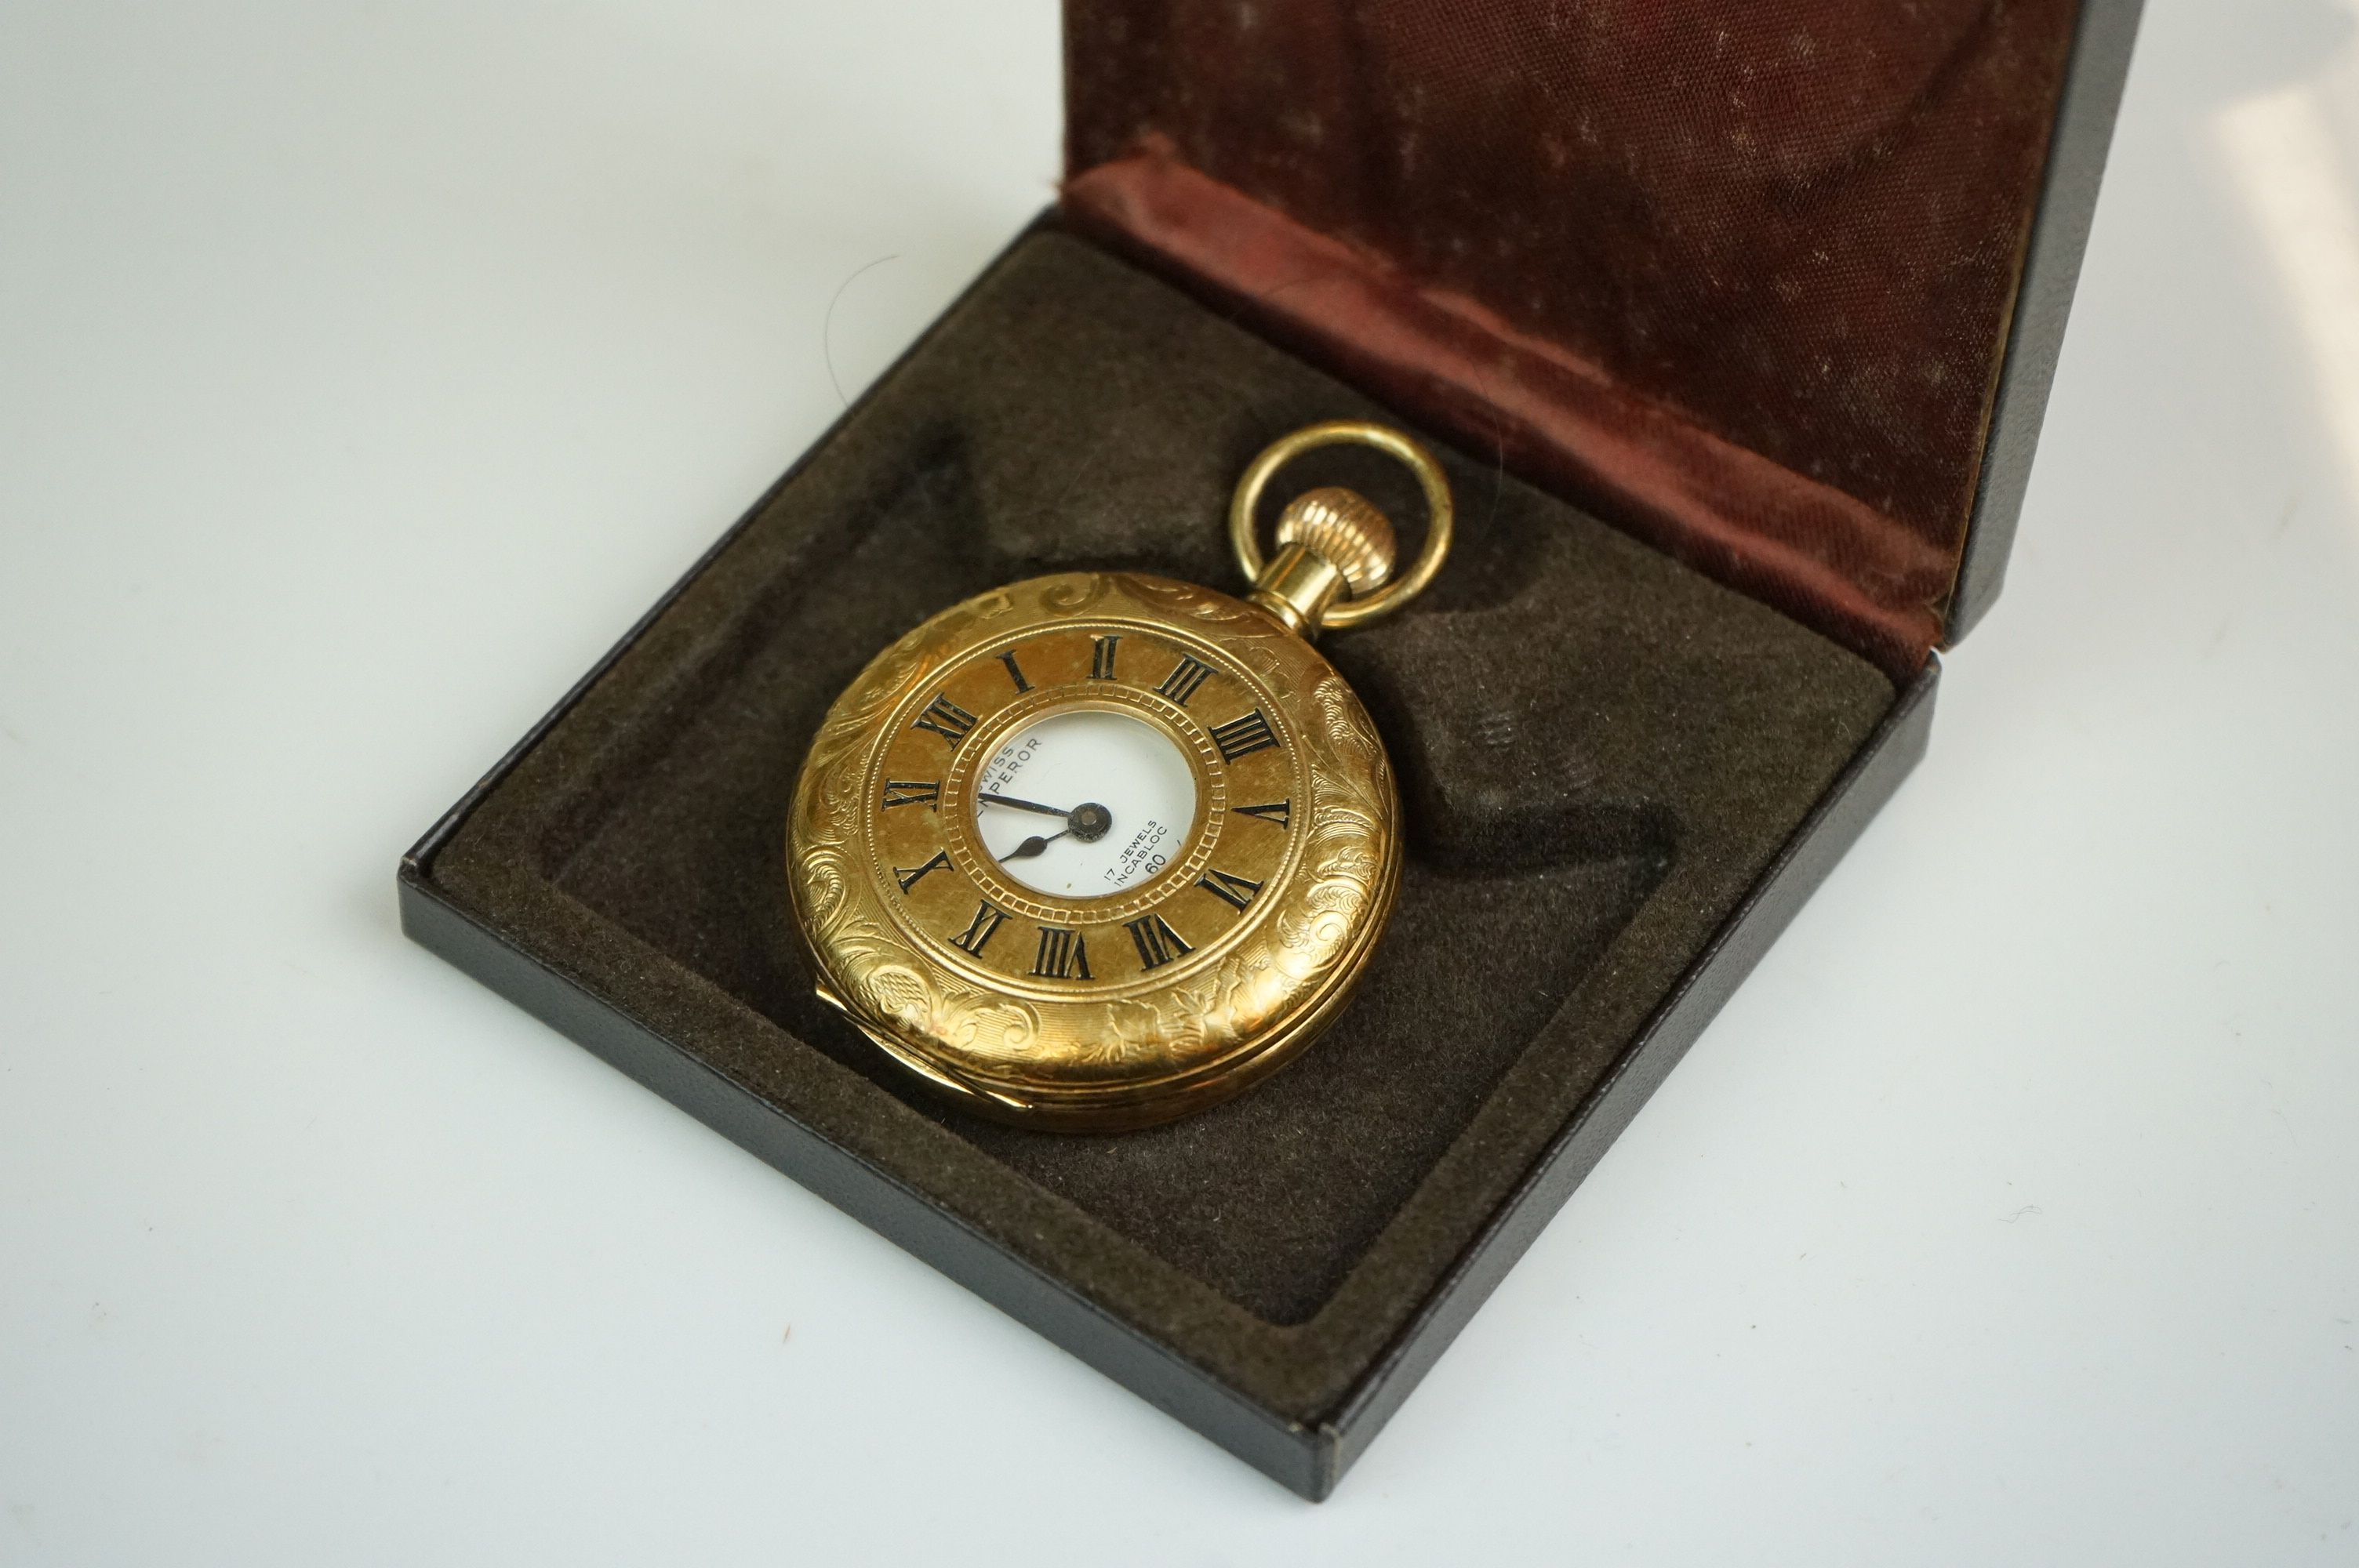 A collection of vintage costume jewellery to include gold and silver examples together with a - Image 3 of 5